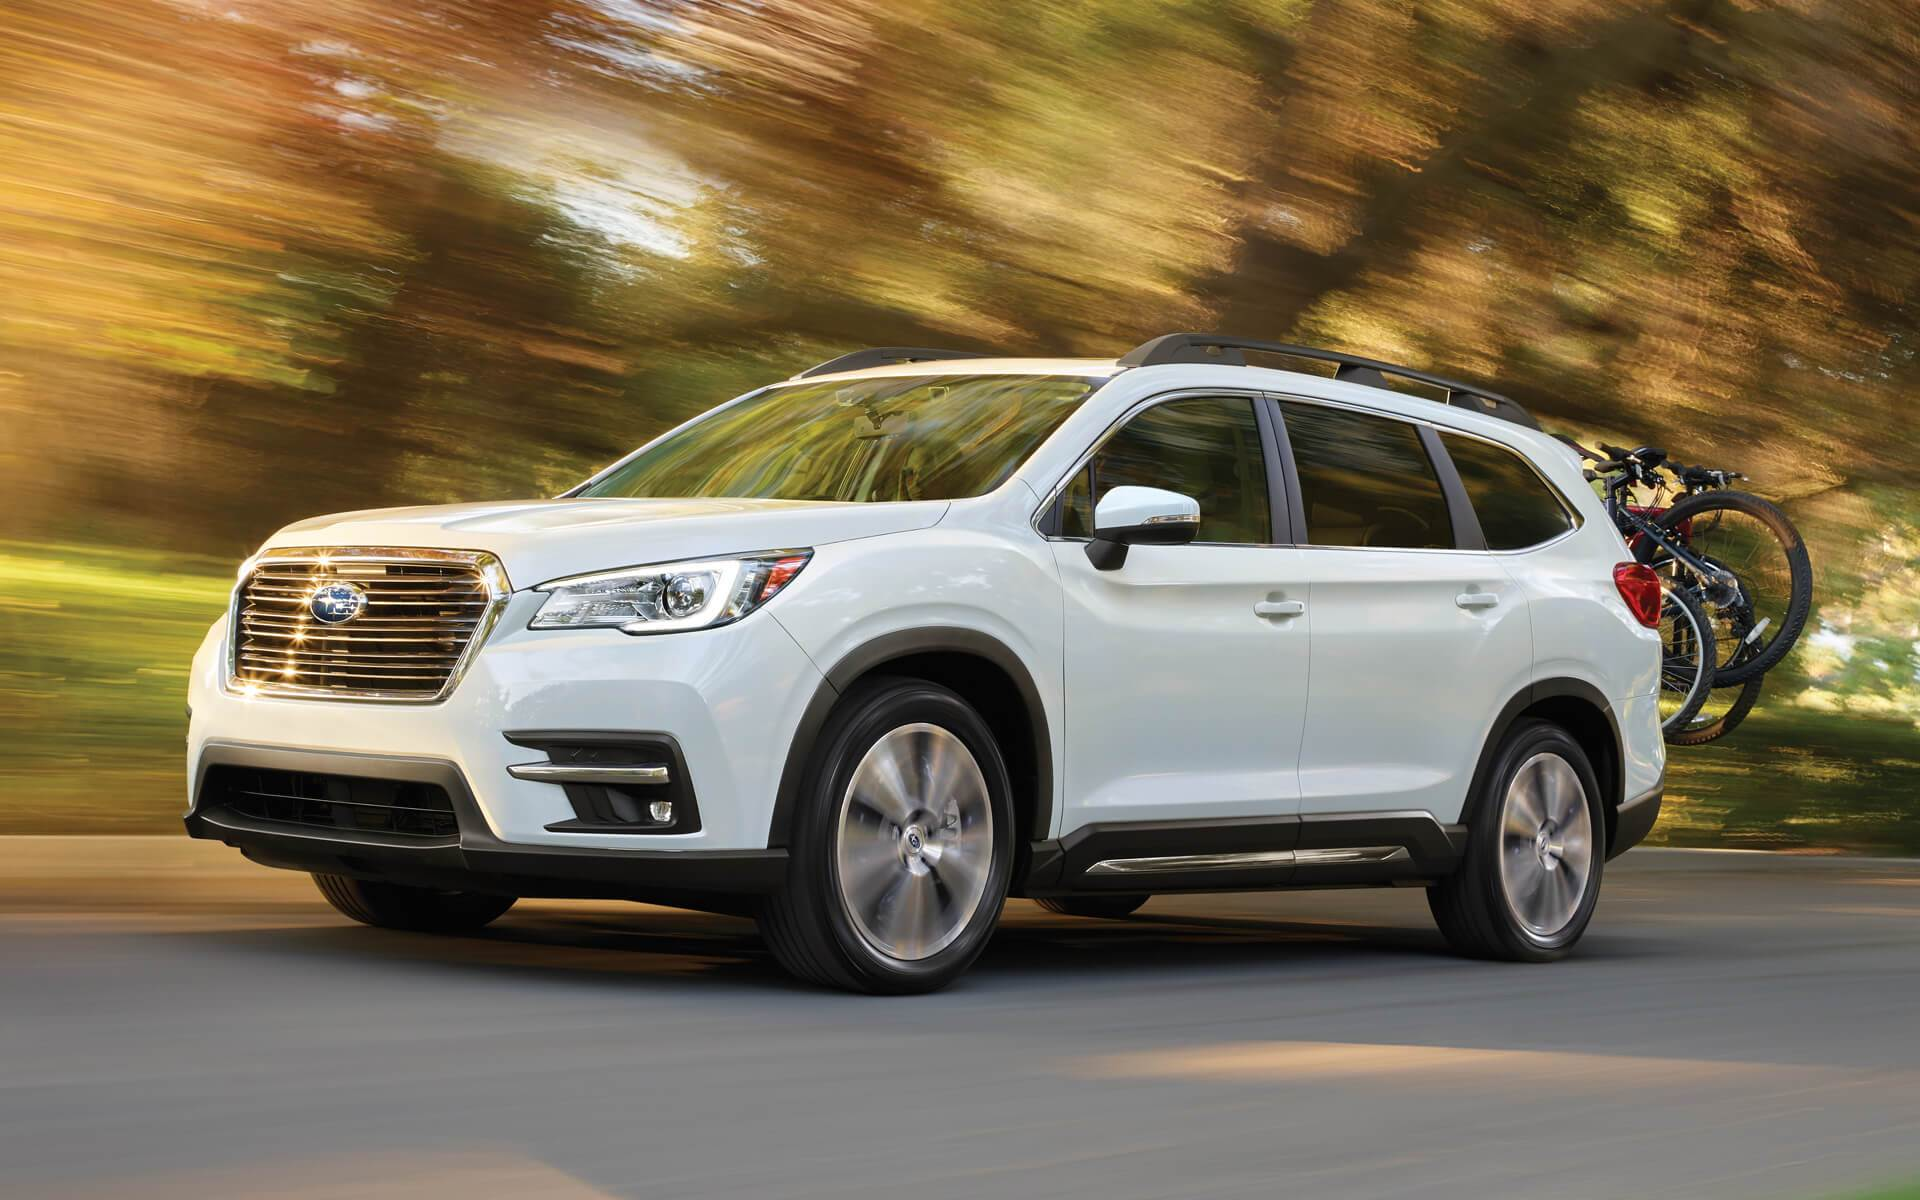 Super Offers on 2019 Subaru Ascent in Bay City